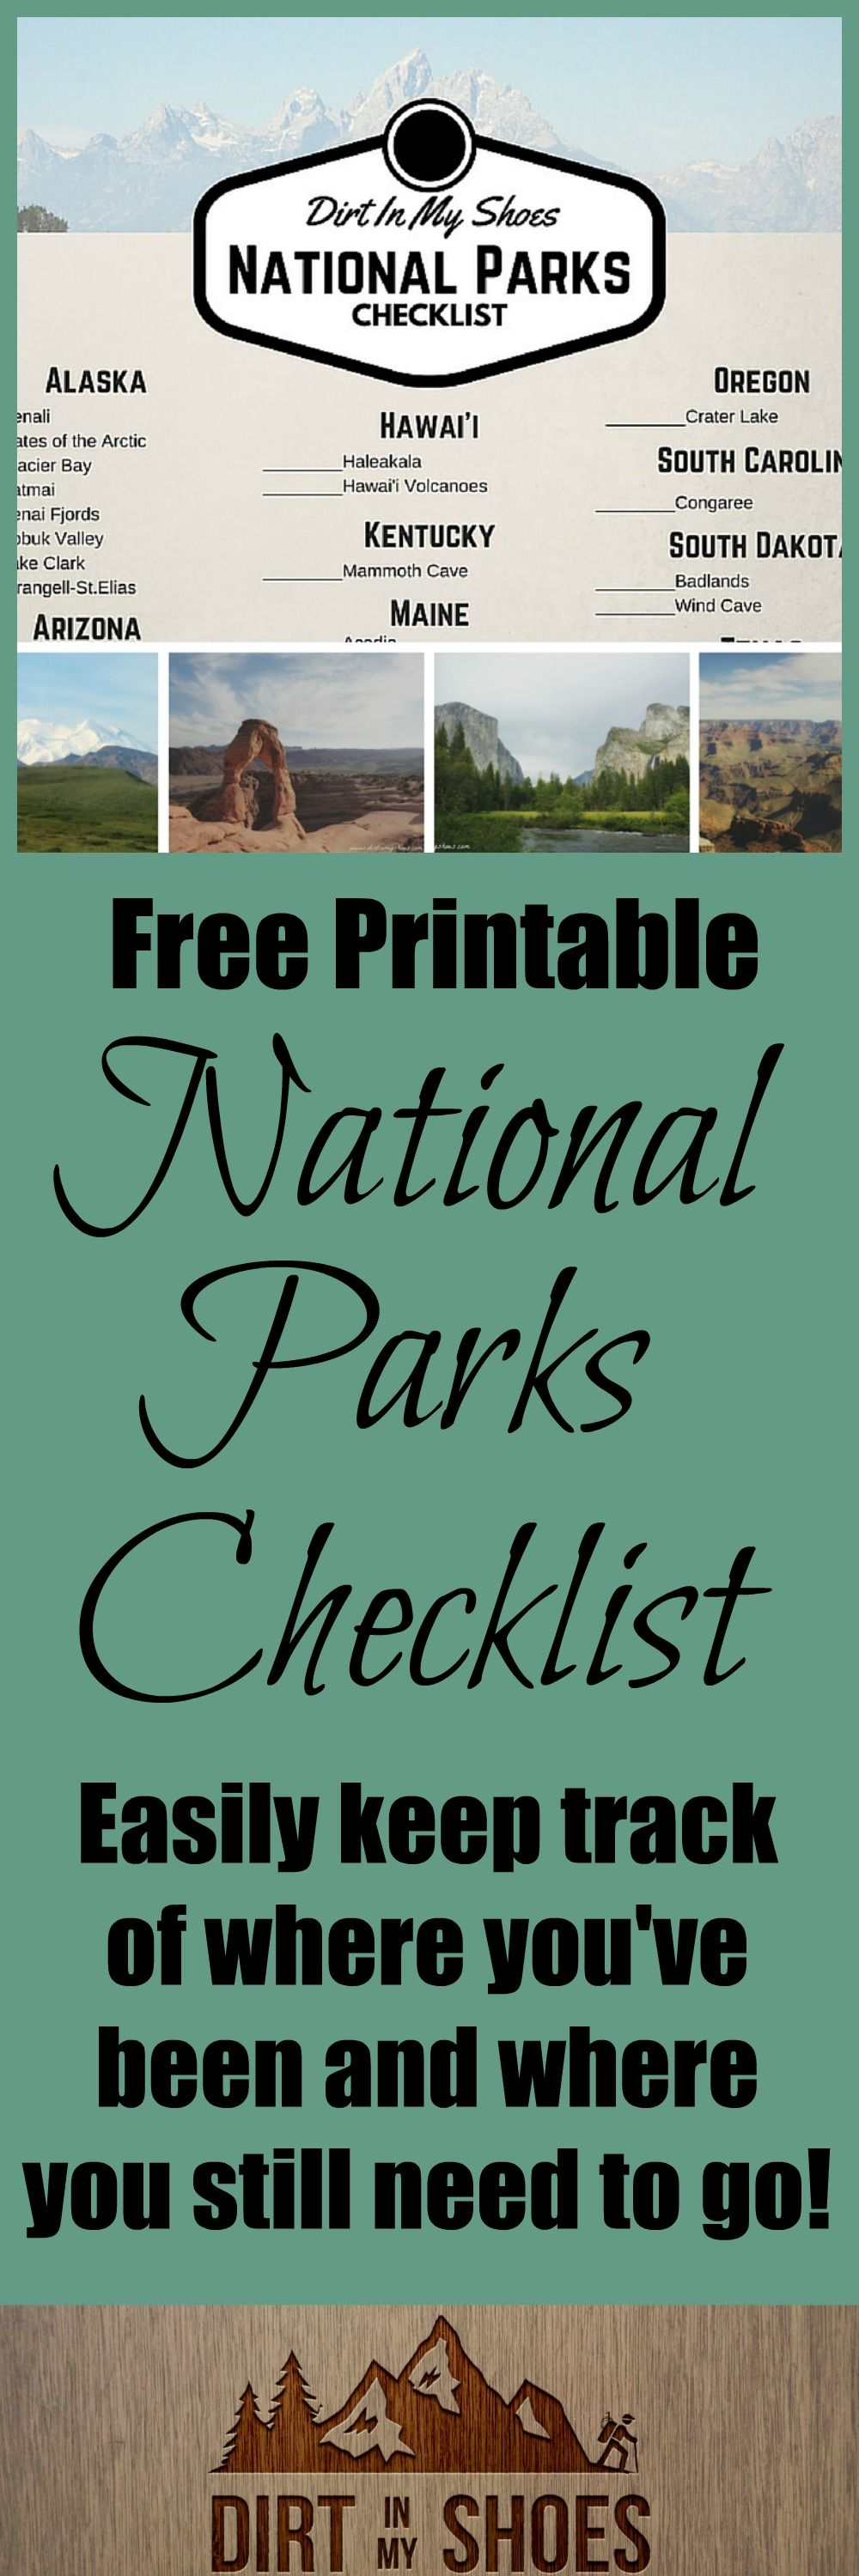 photo regarding Printable National Park Checklist titled Cost-free Nationwide Parks List! Nationwide Parks Countrywide